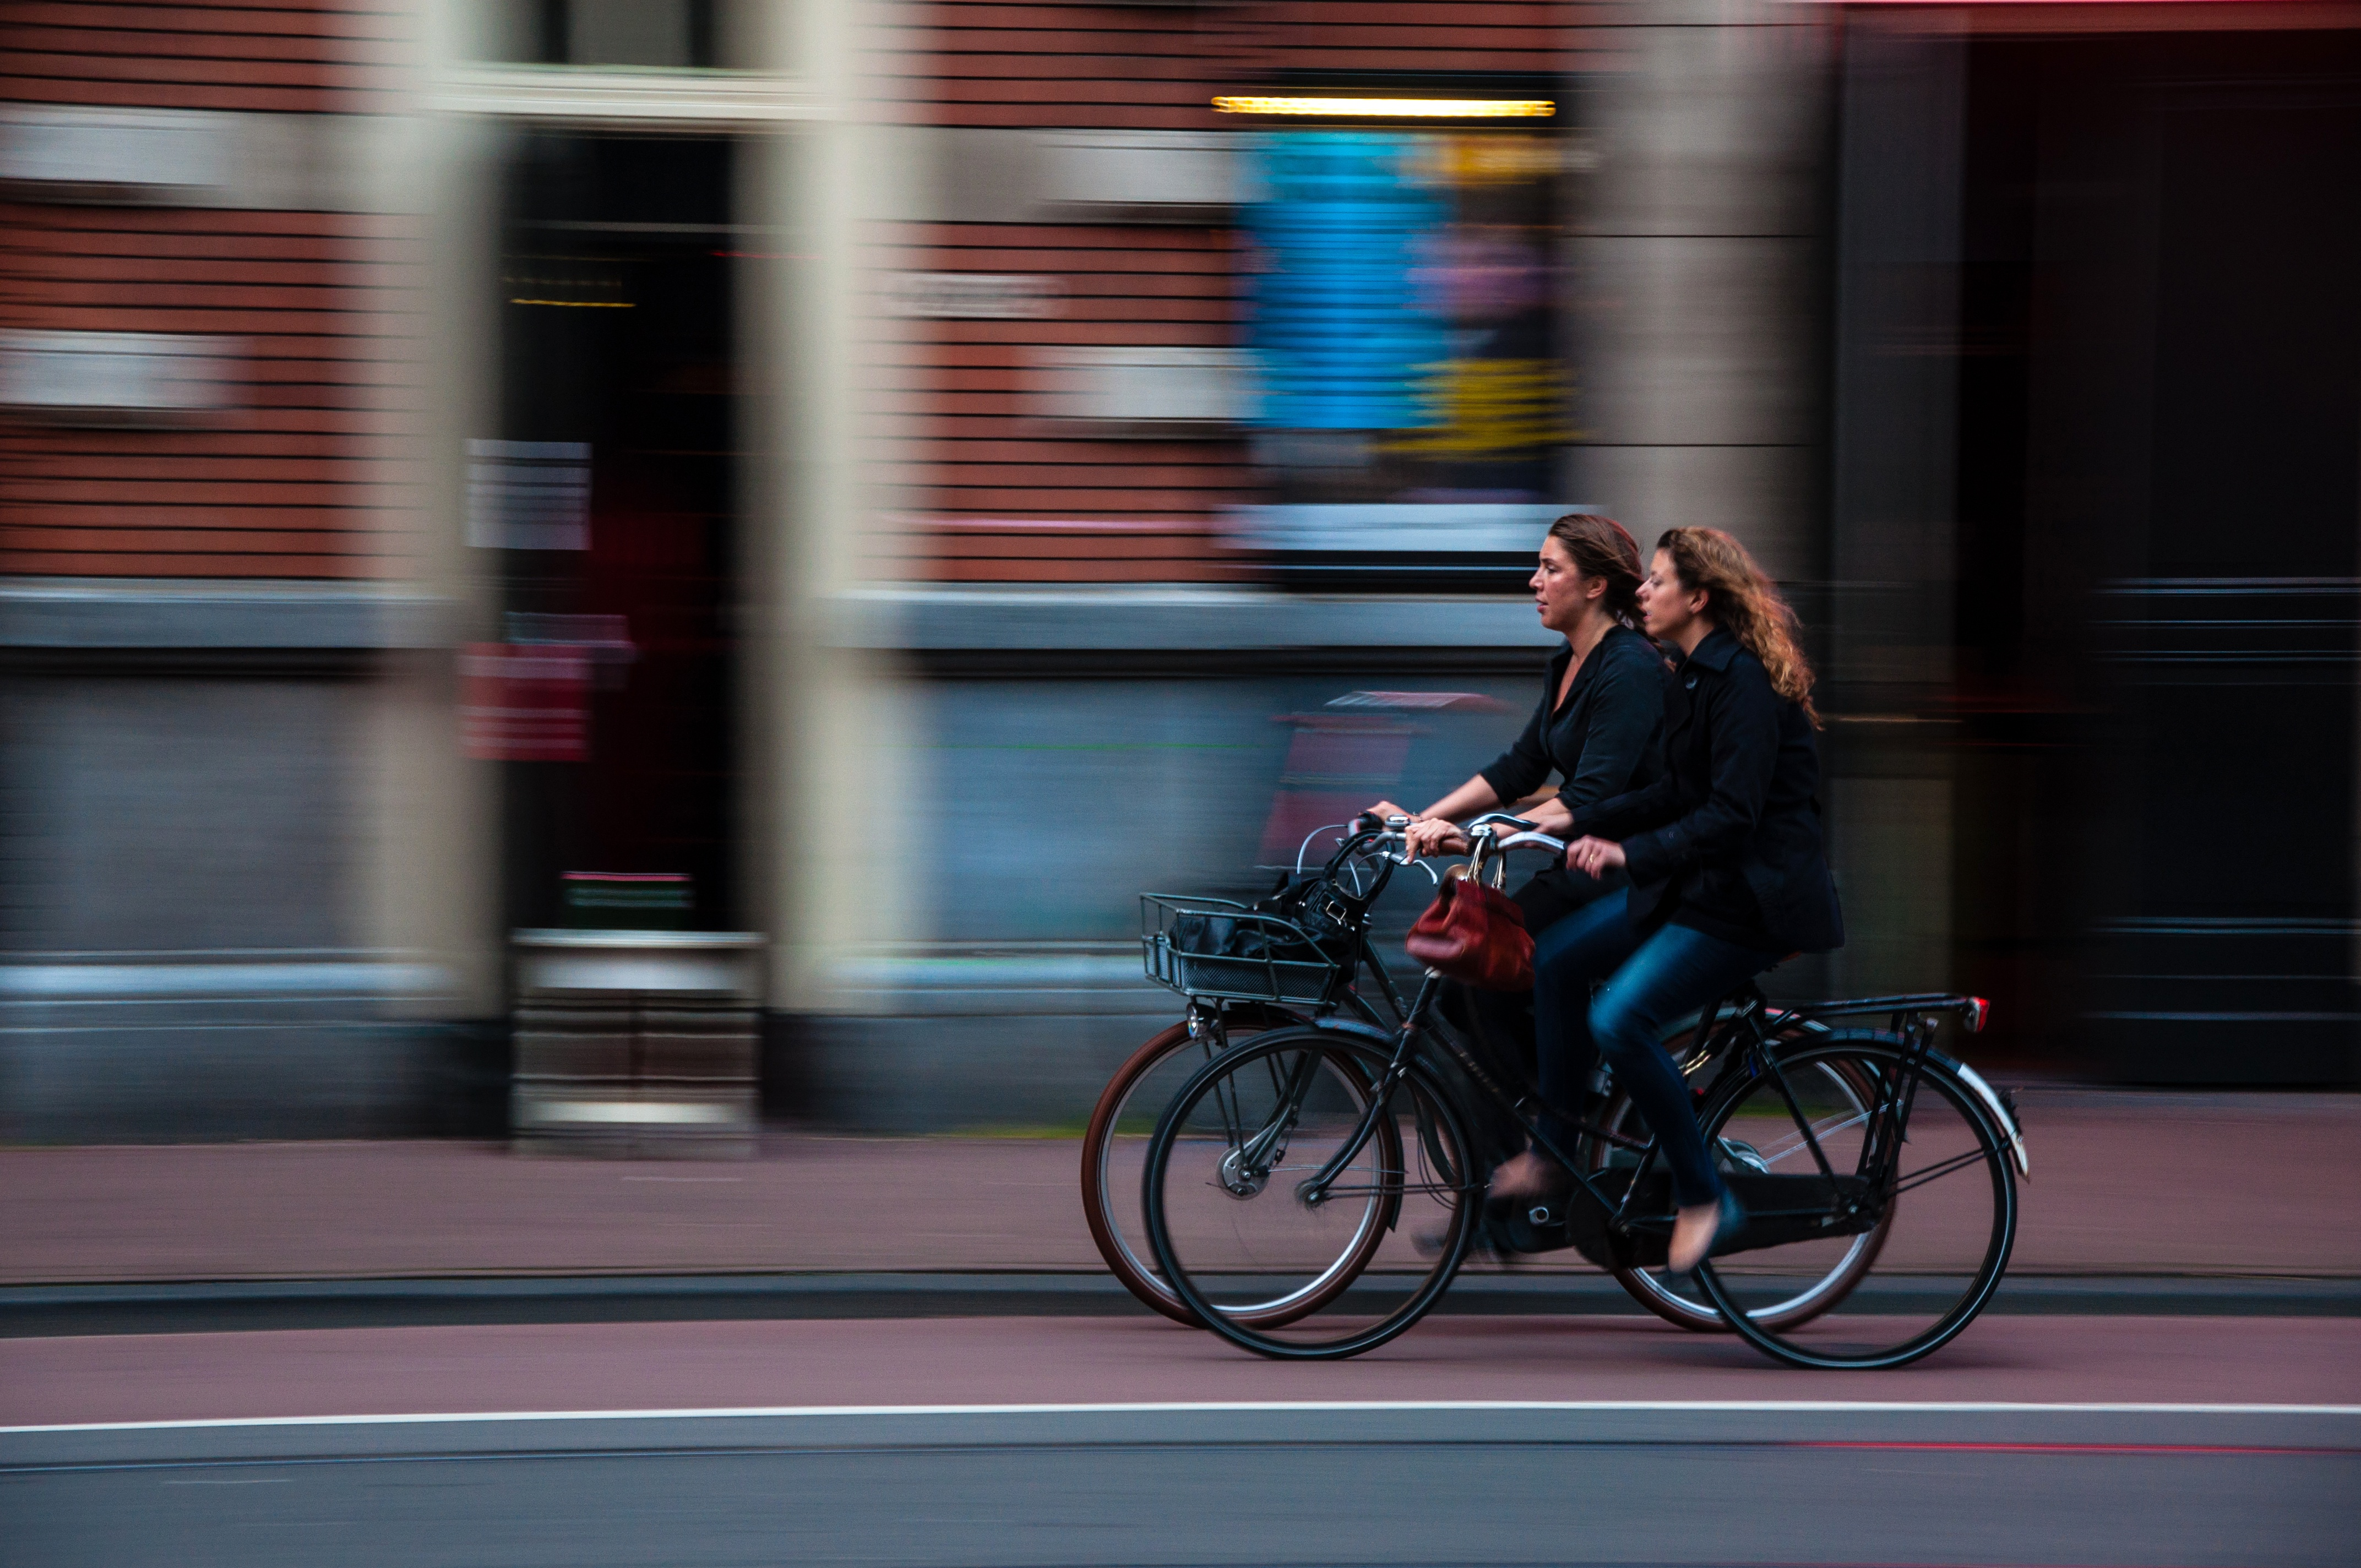 Friends on bikes, Bicycle, Fast, Friends, Movement, HQ Photo